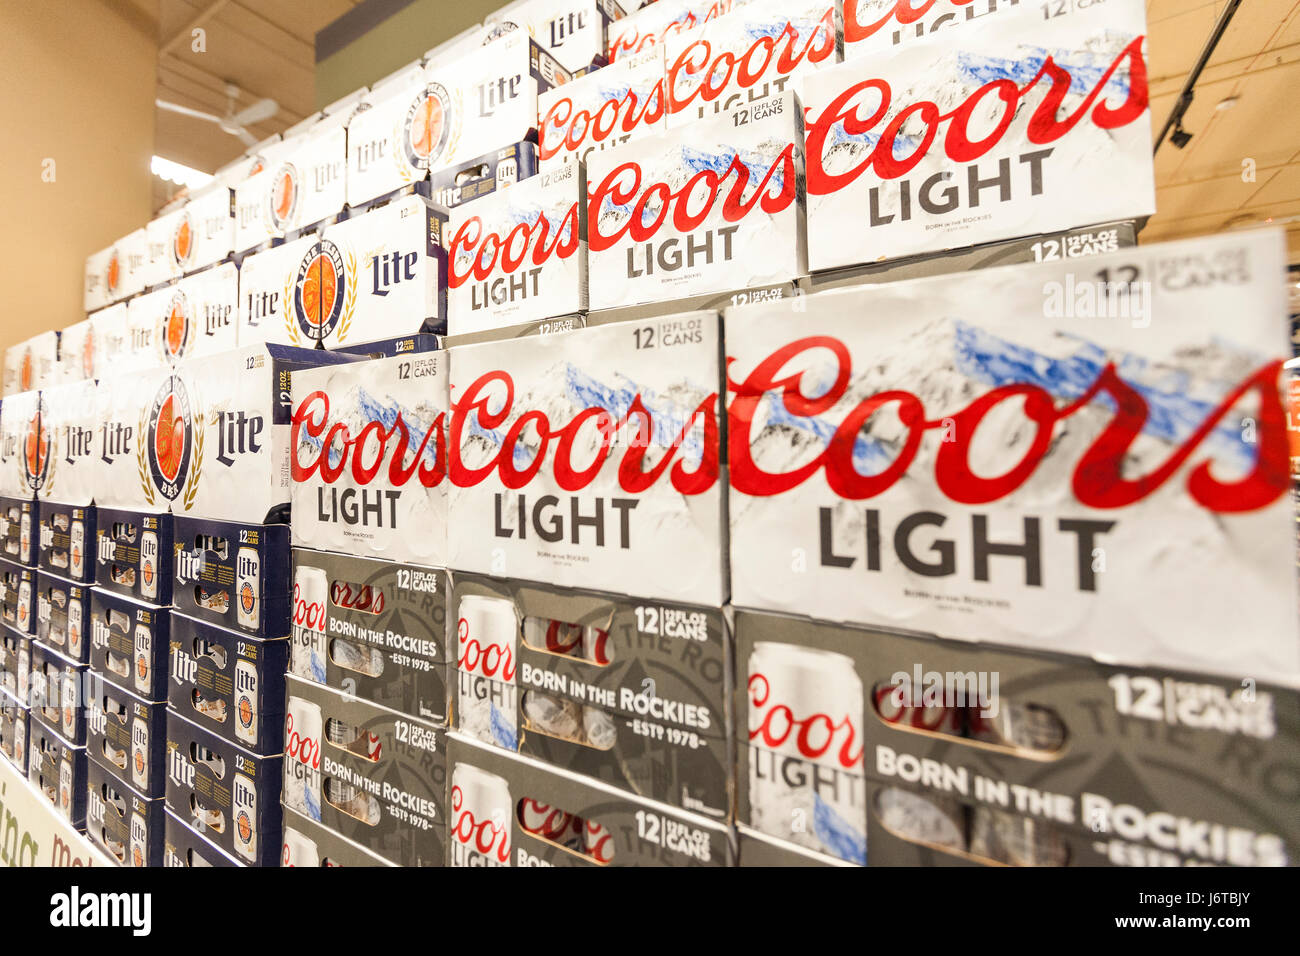 Case Of Coors Light Cases Of Beer Stock Photos Cases Of Beer Stock Images .  Case Of Coors Light ...